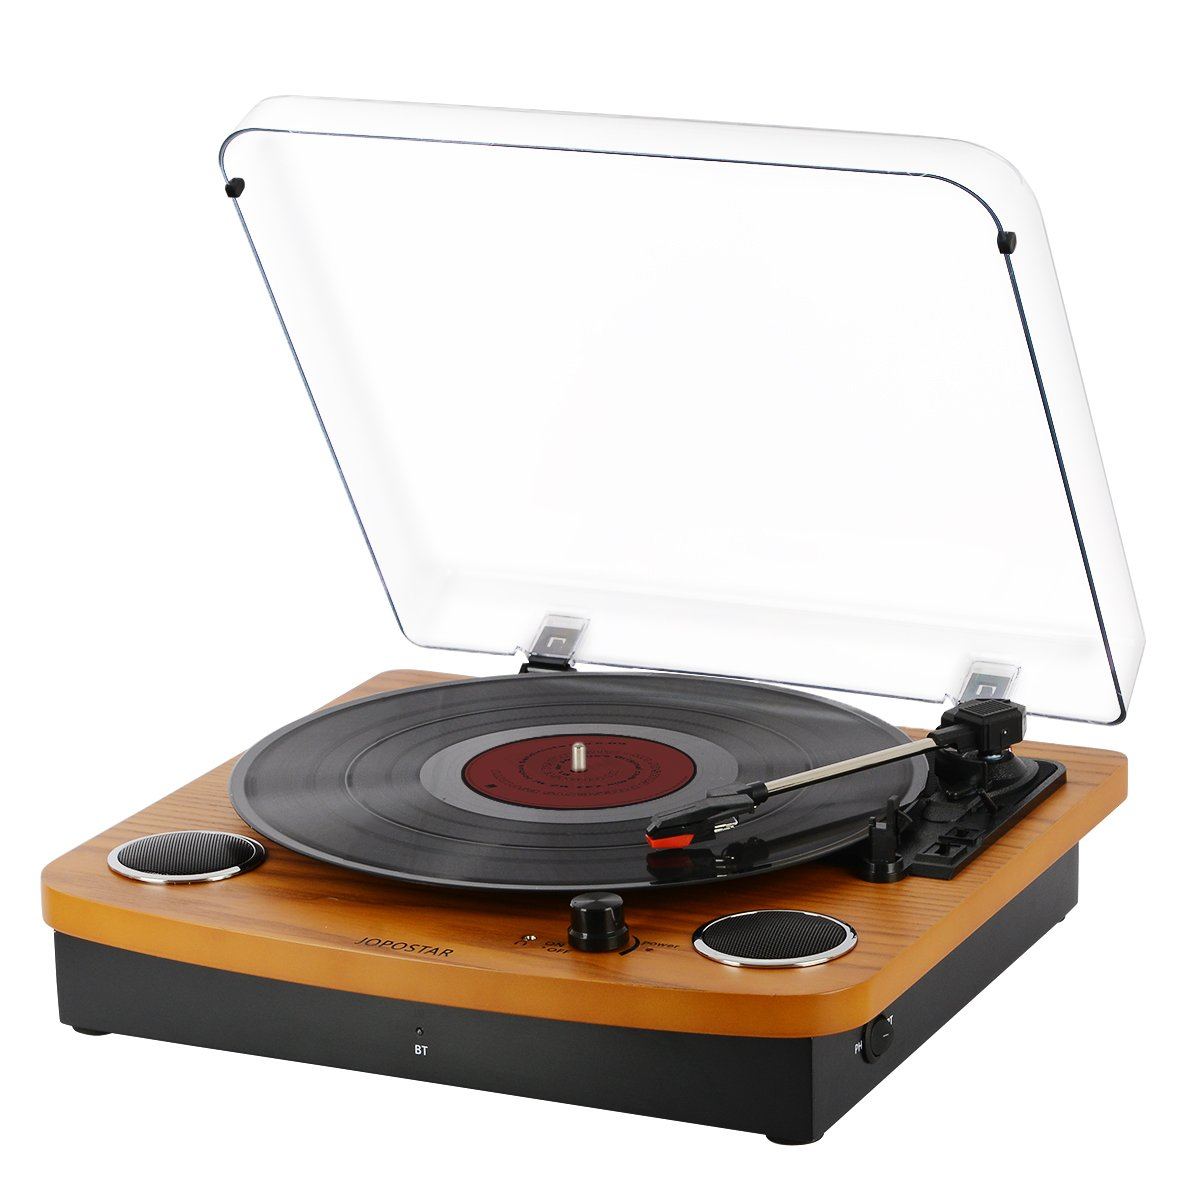 Bluetooth Turntable,JOPOSTAR Vinly Record Player Built-in Dual Stereo Speakers, LP 3-Speed Belt Driven, Aux Input & RCA Output, Natural Wood by JOPOSTAR